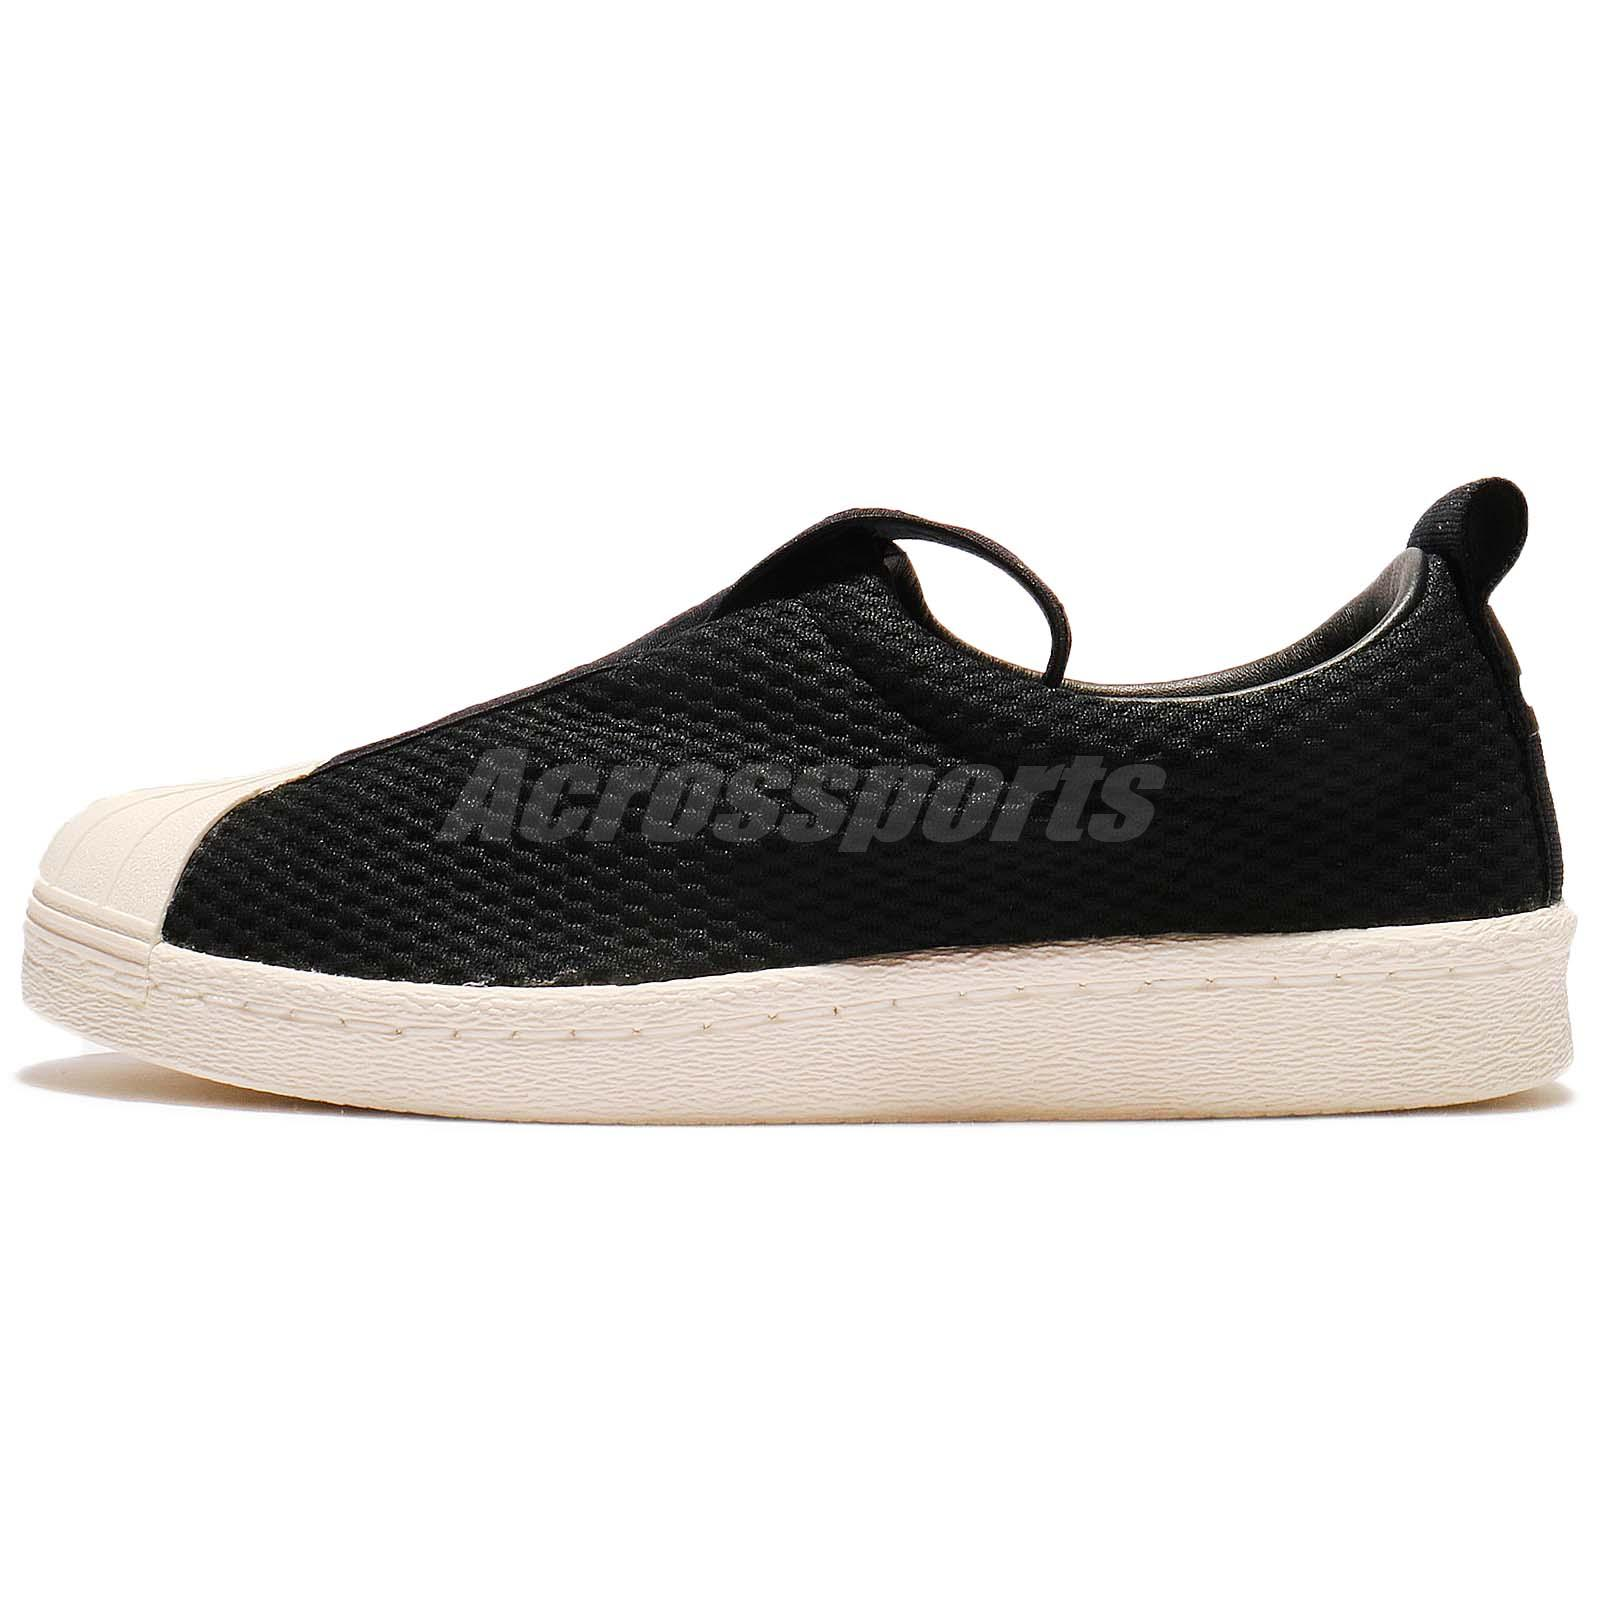 new arrivals 93054 8492f Details about adidas Originals Superstar BW35 Slip-On W Black White Women  Shoes Sneaker BY9137